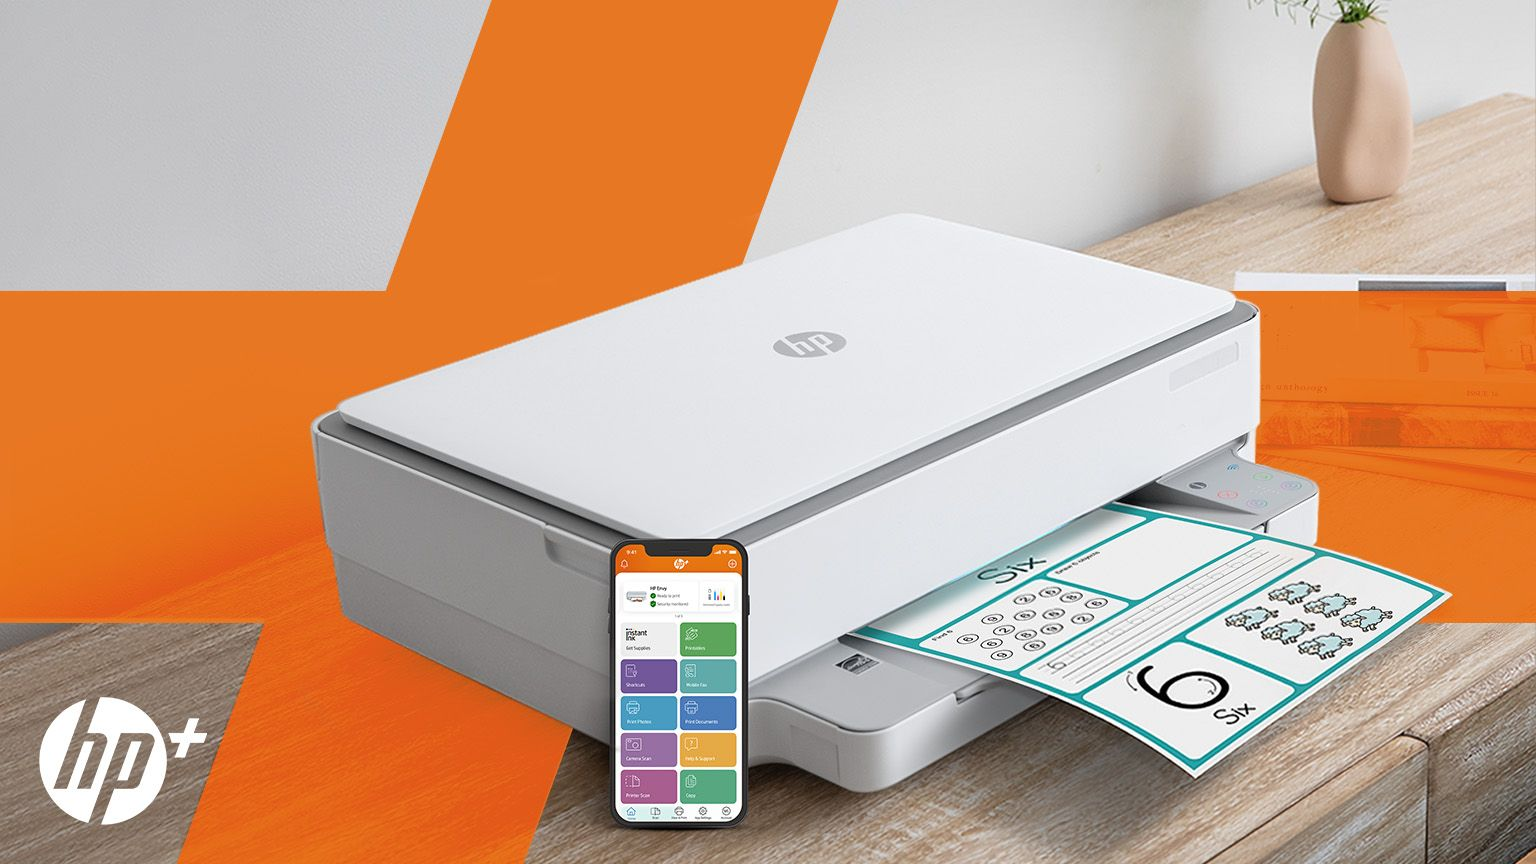 Introducing HP+. Smart Printing has arrived.